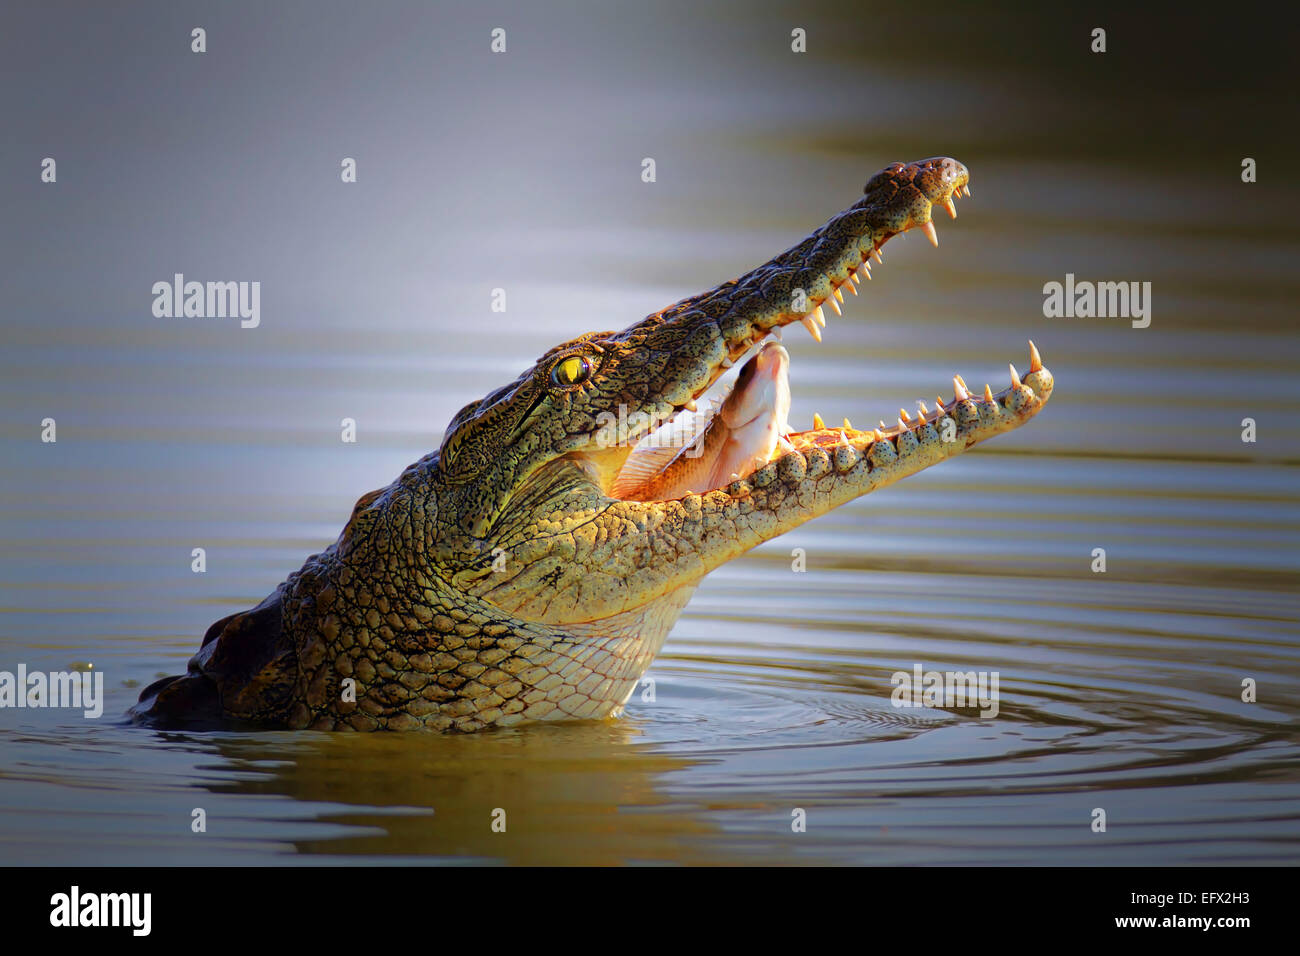 Nile crocodile swallowing a fish; crocodylus niloticus - Kruger National Park - Stock Image